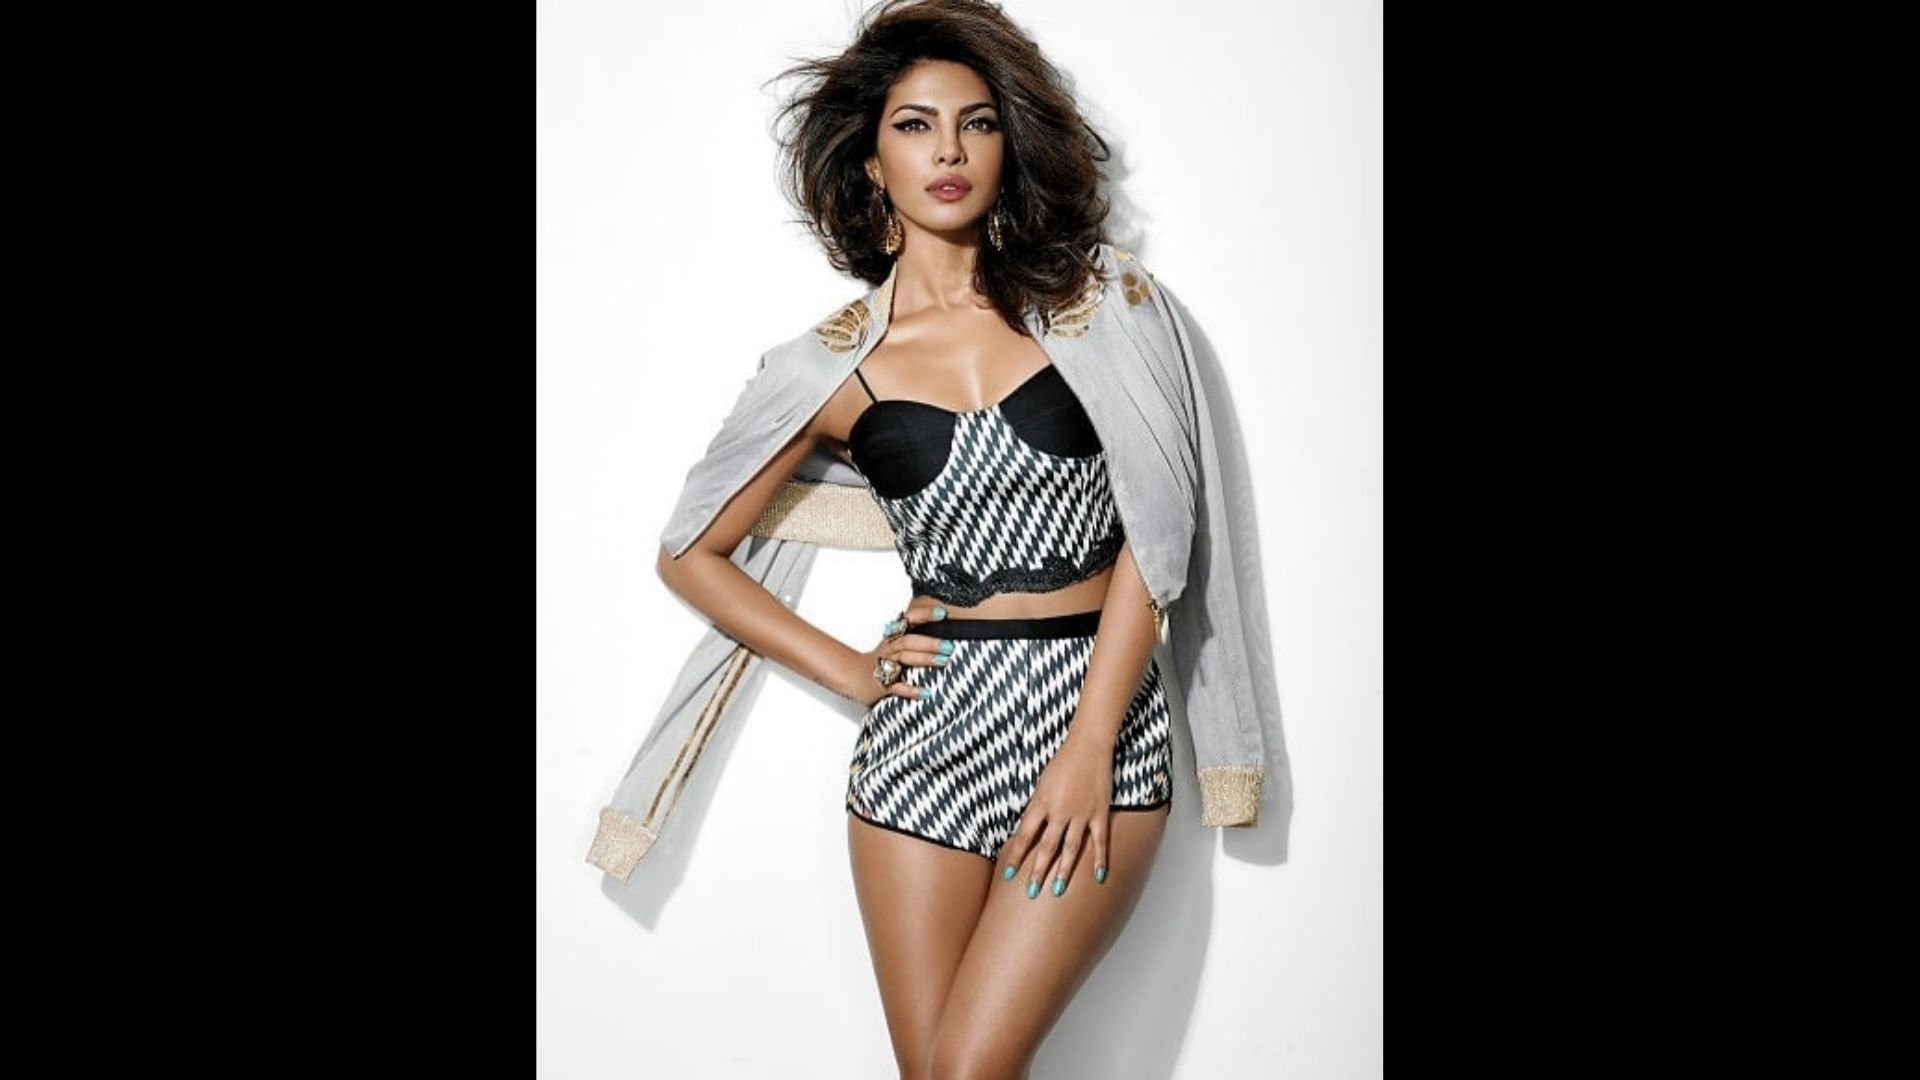 Controversies Involving Priyanka Chopra That Shocked Not Just Bollywood But Her Fans Too